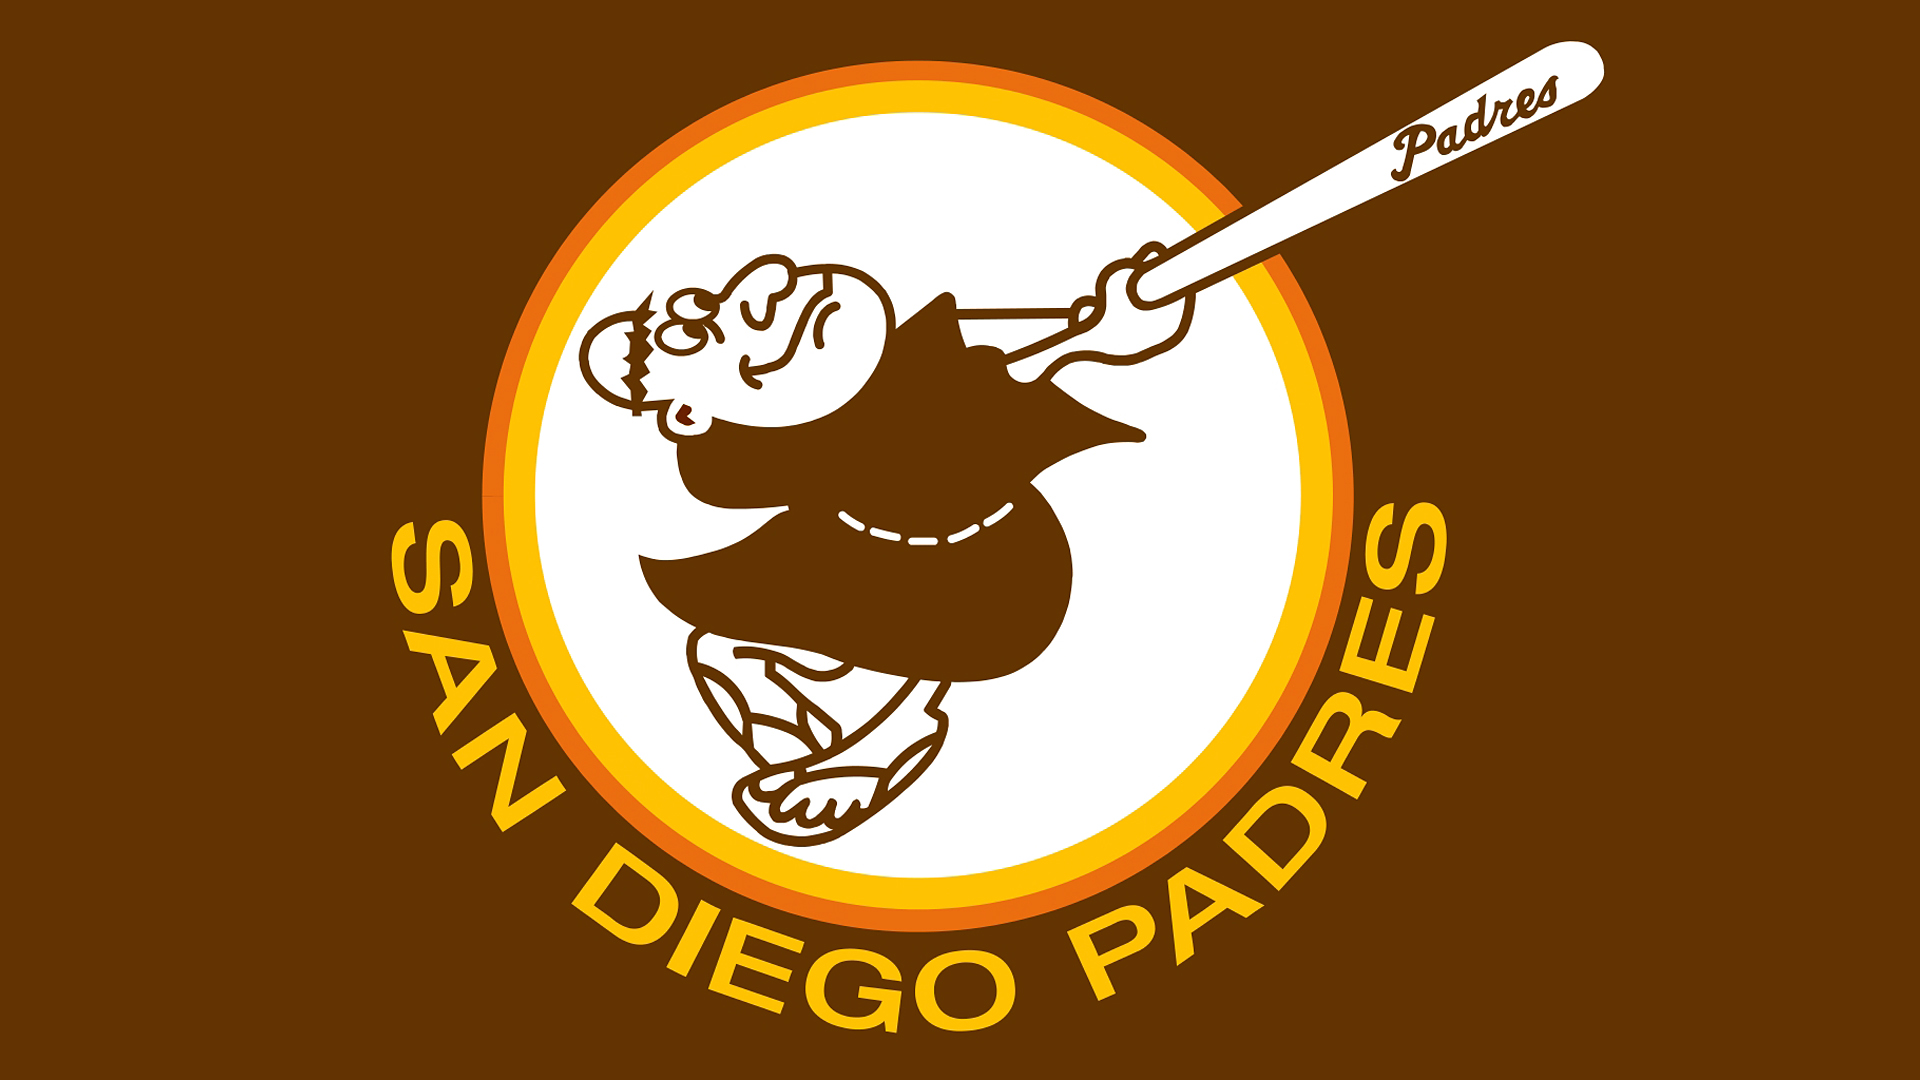 San Diego Padres Computer Wallpapers Desktop Backgrounds 1920x1080 1920x1080